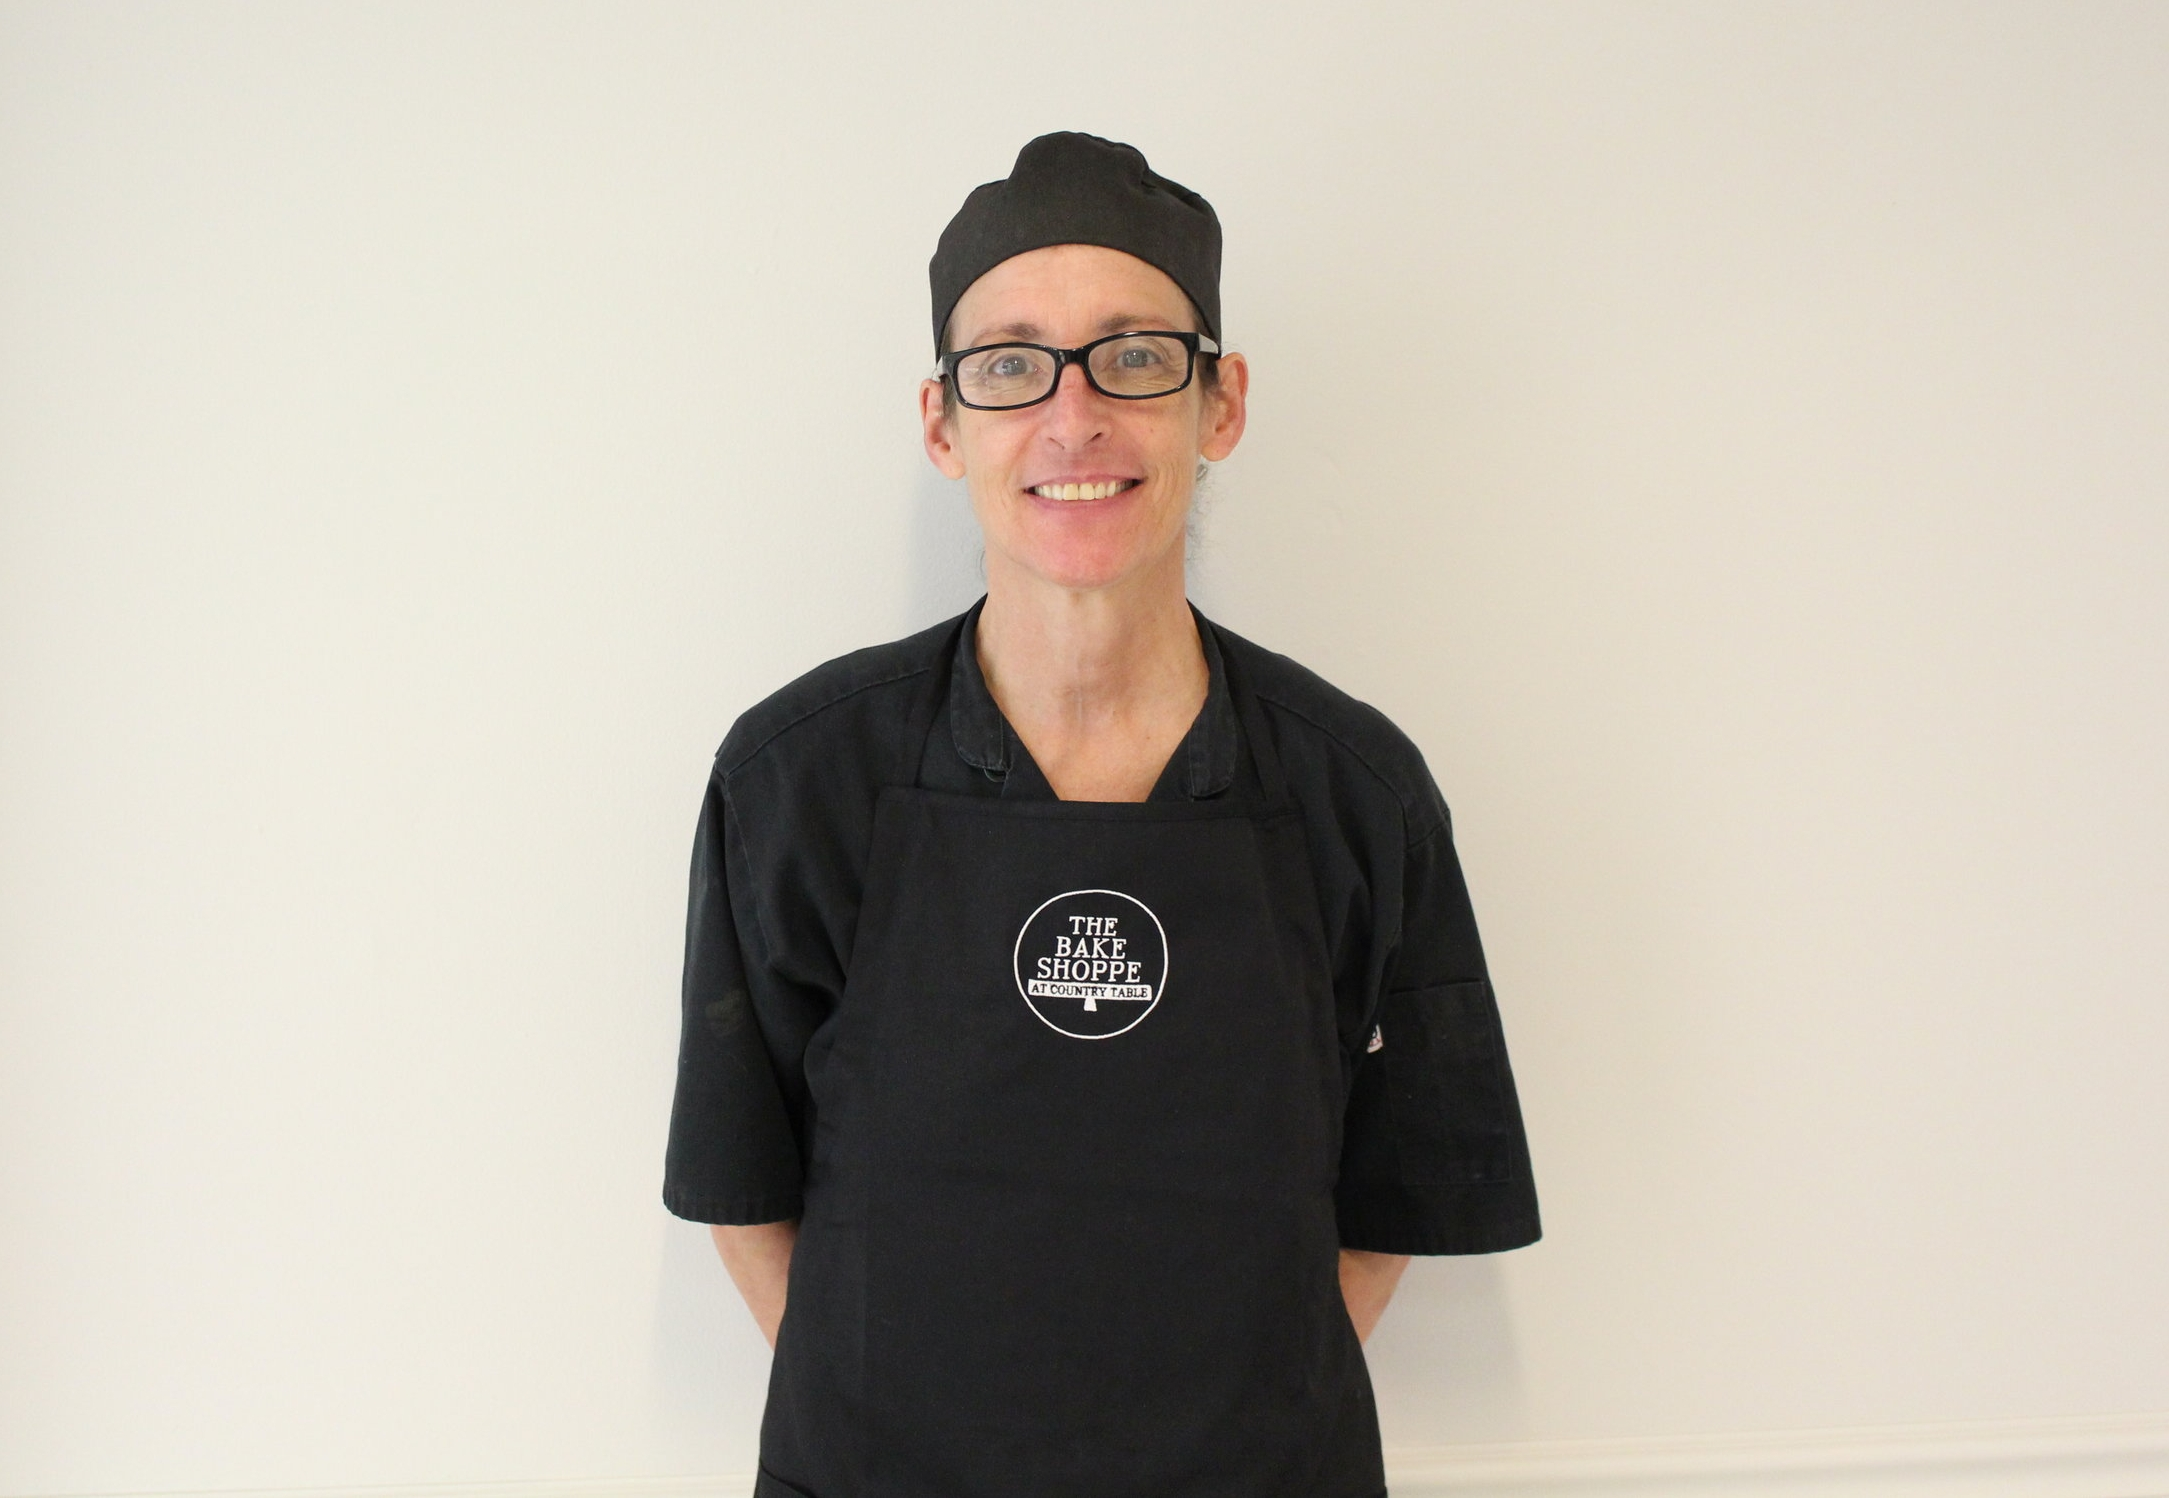 Kim - Title: Shoppe ManagerOne thing I find most interesting: The moon.Favorite food: Pizza Beverage: Coffee Snack food: Cheese Baked good: Good Bread Movie: Shawshank Redemption Season: SpringIf I could do anything for the day: Go to Fort Myers Beach, FL